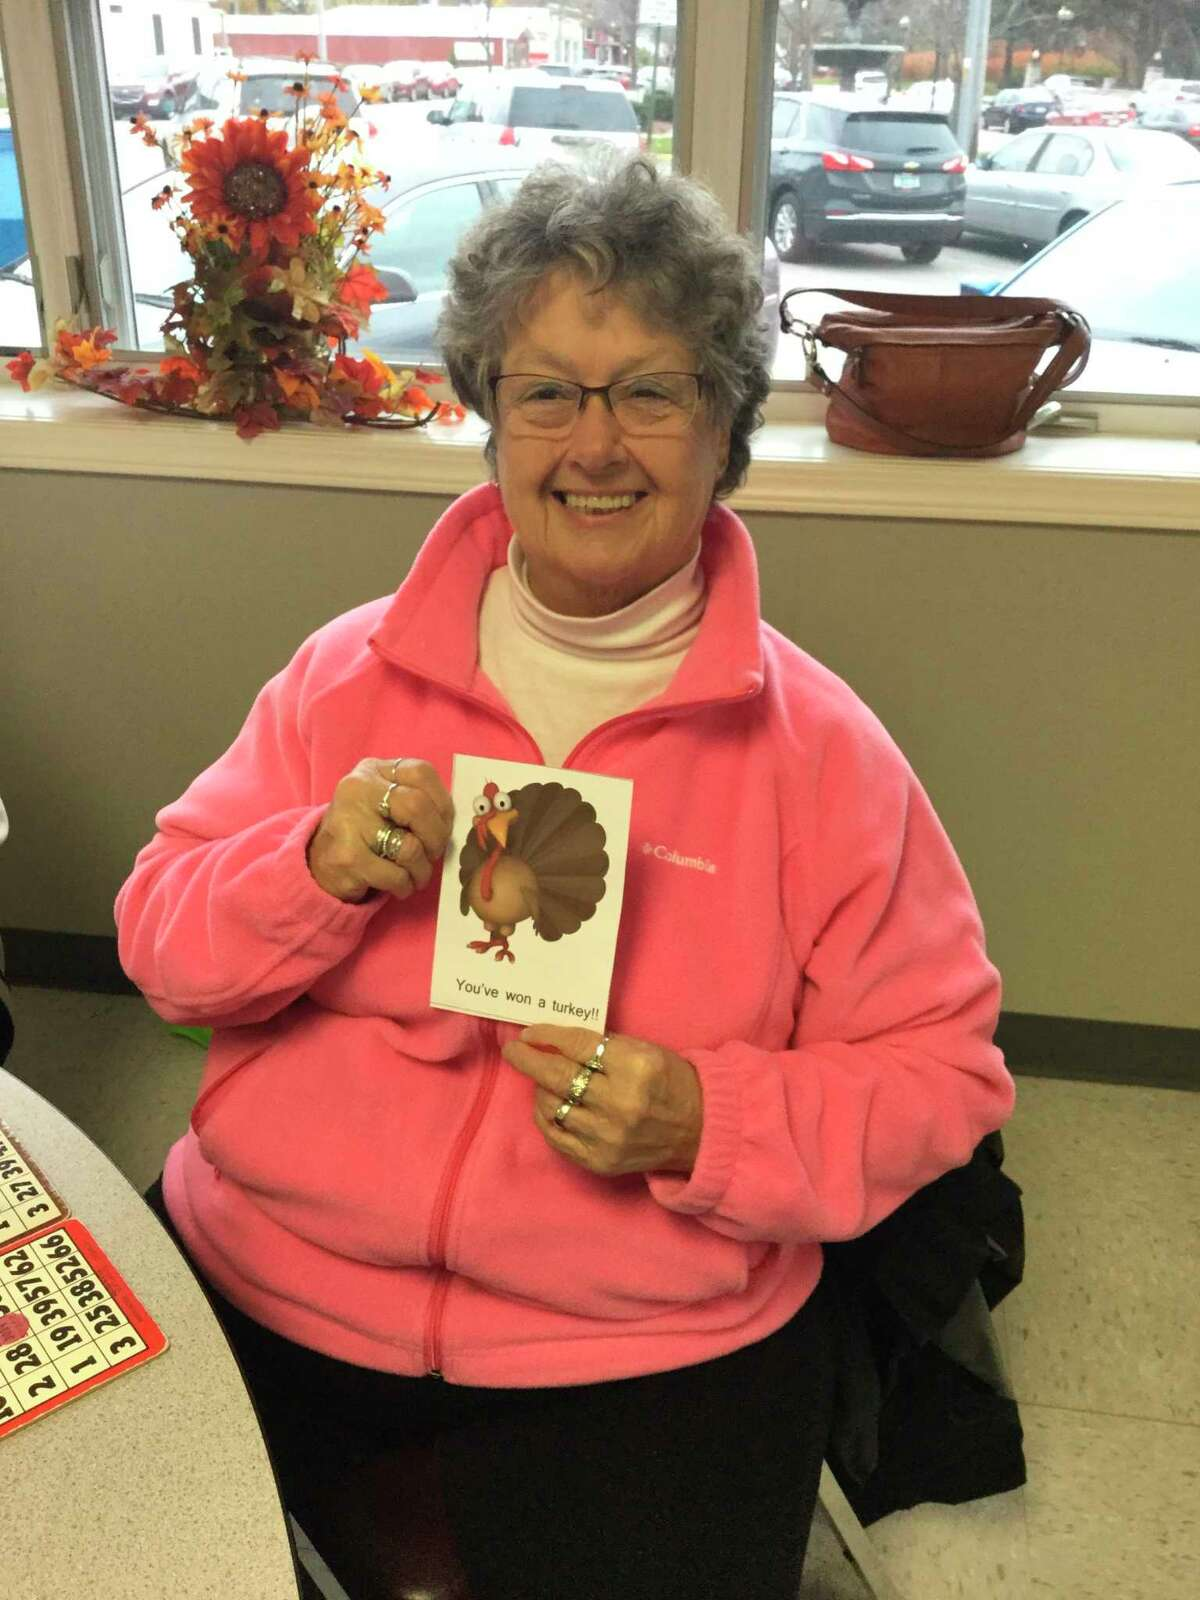 The Manistee County Council on Aging employees and volunteers forward to the time when everyone can gather again for fun activities. In Novembers past, volunteer Donna Kukla wins a turkey in a drawing during a weekly bingo day. (Courtesy Photo)